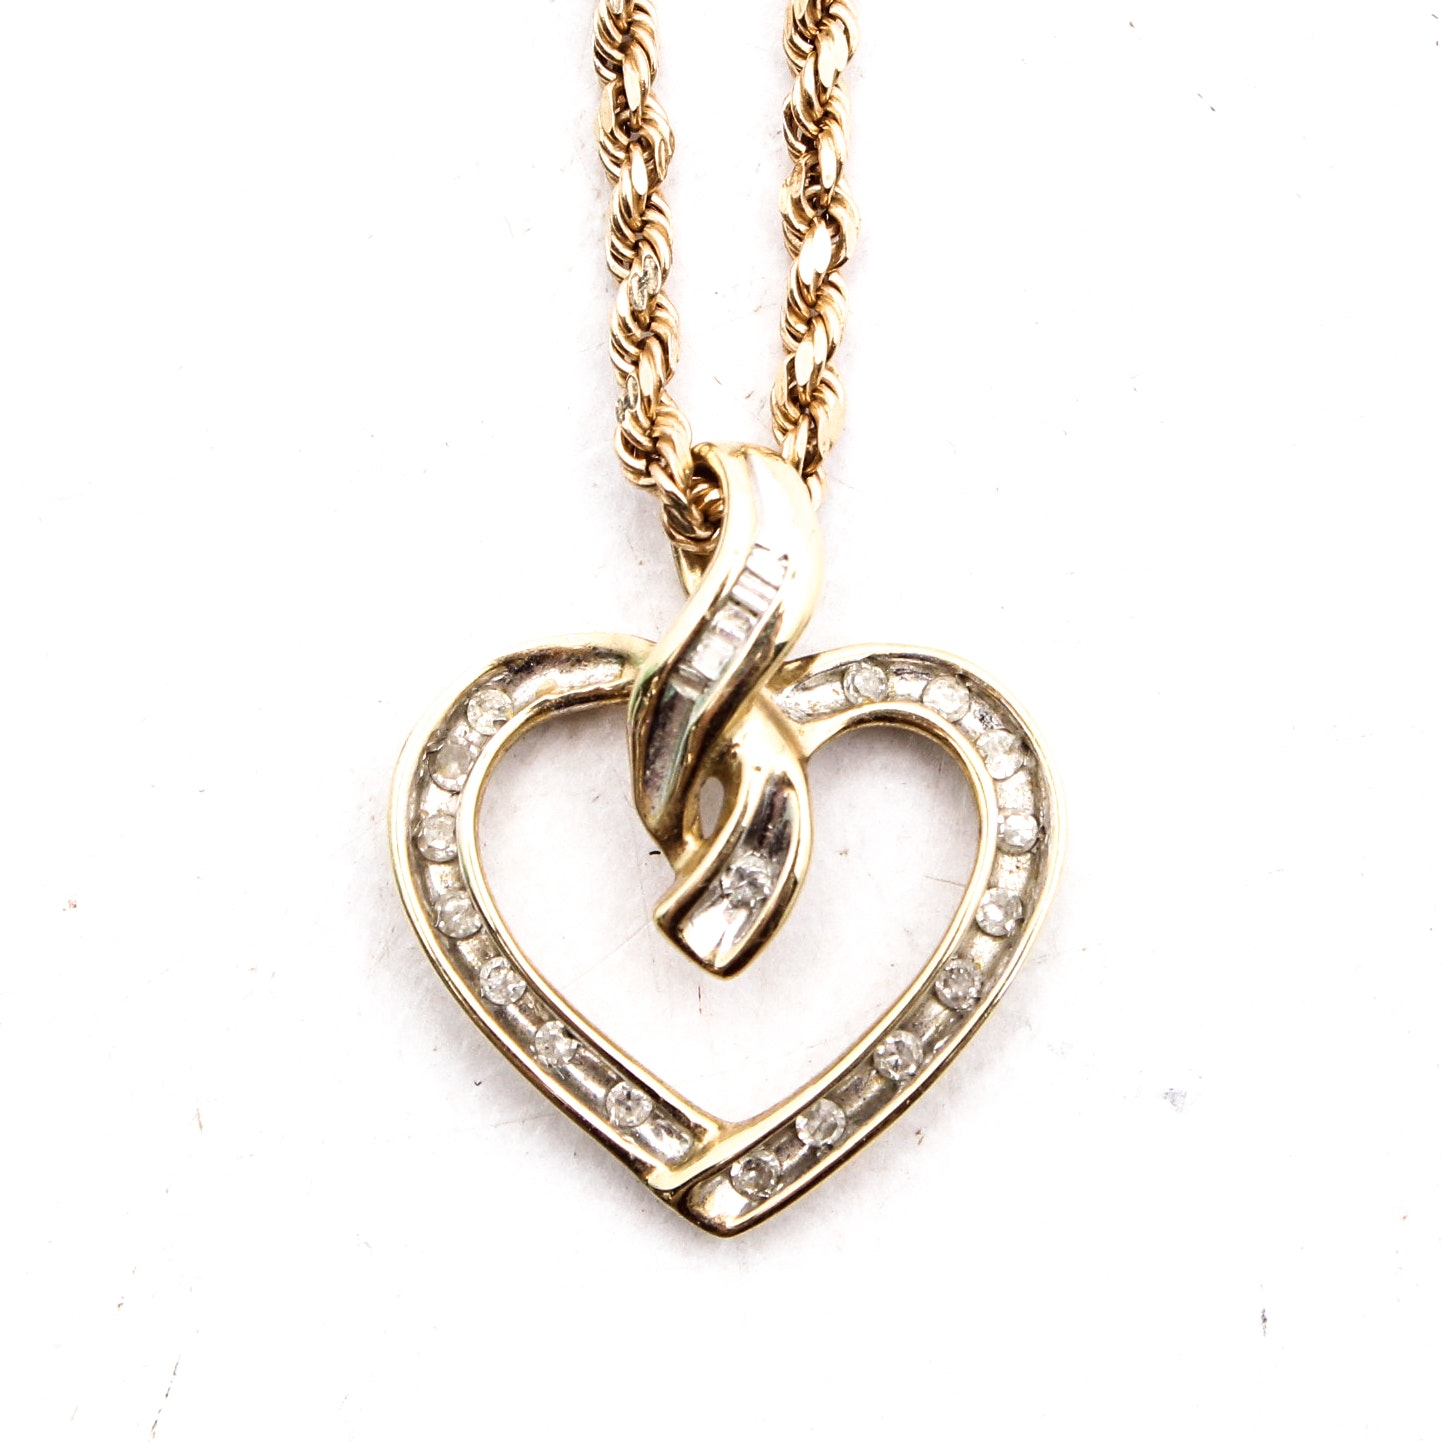 14K Yellow Gold Chain with Diamond Pendant